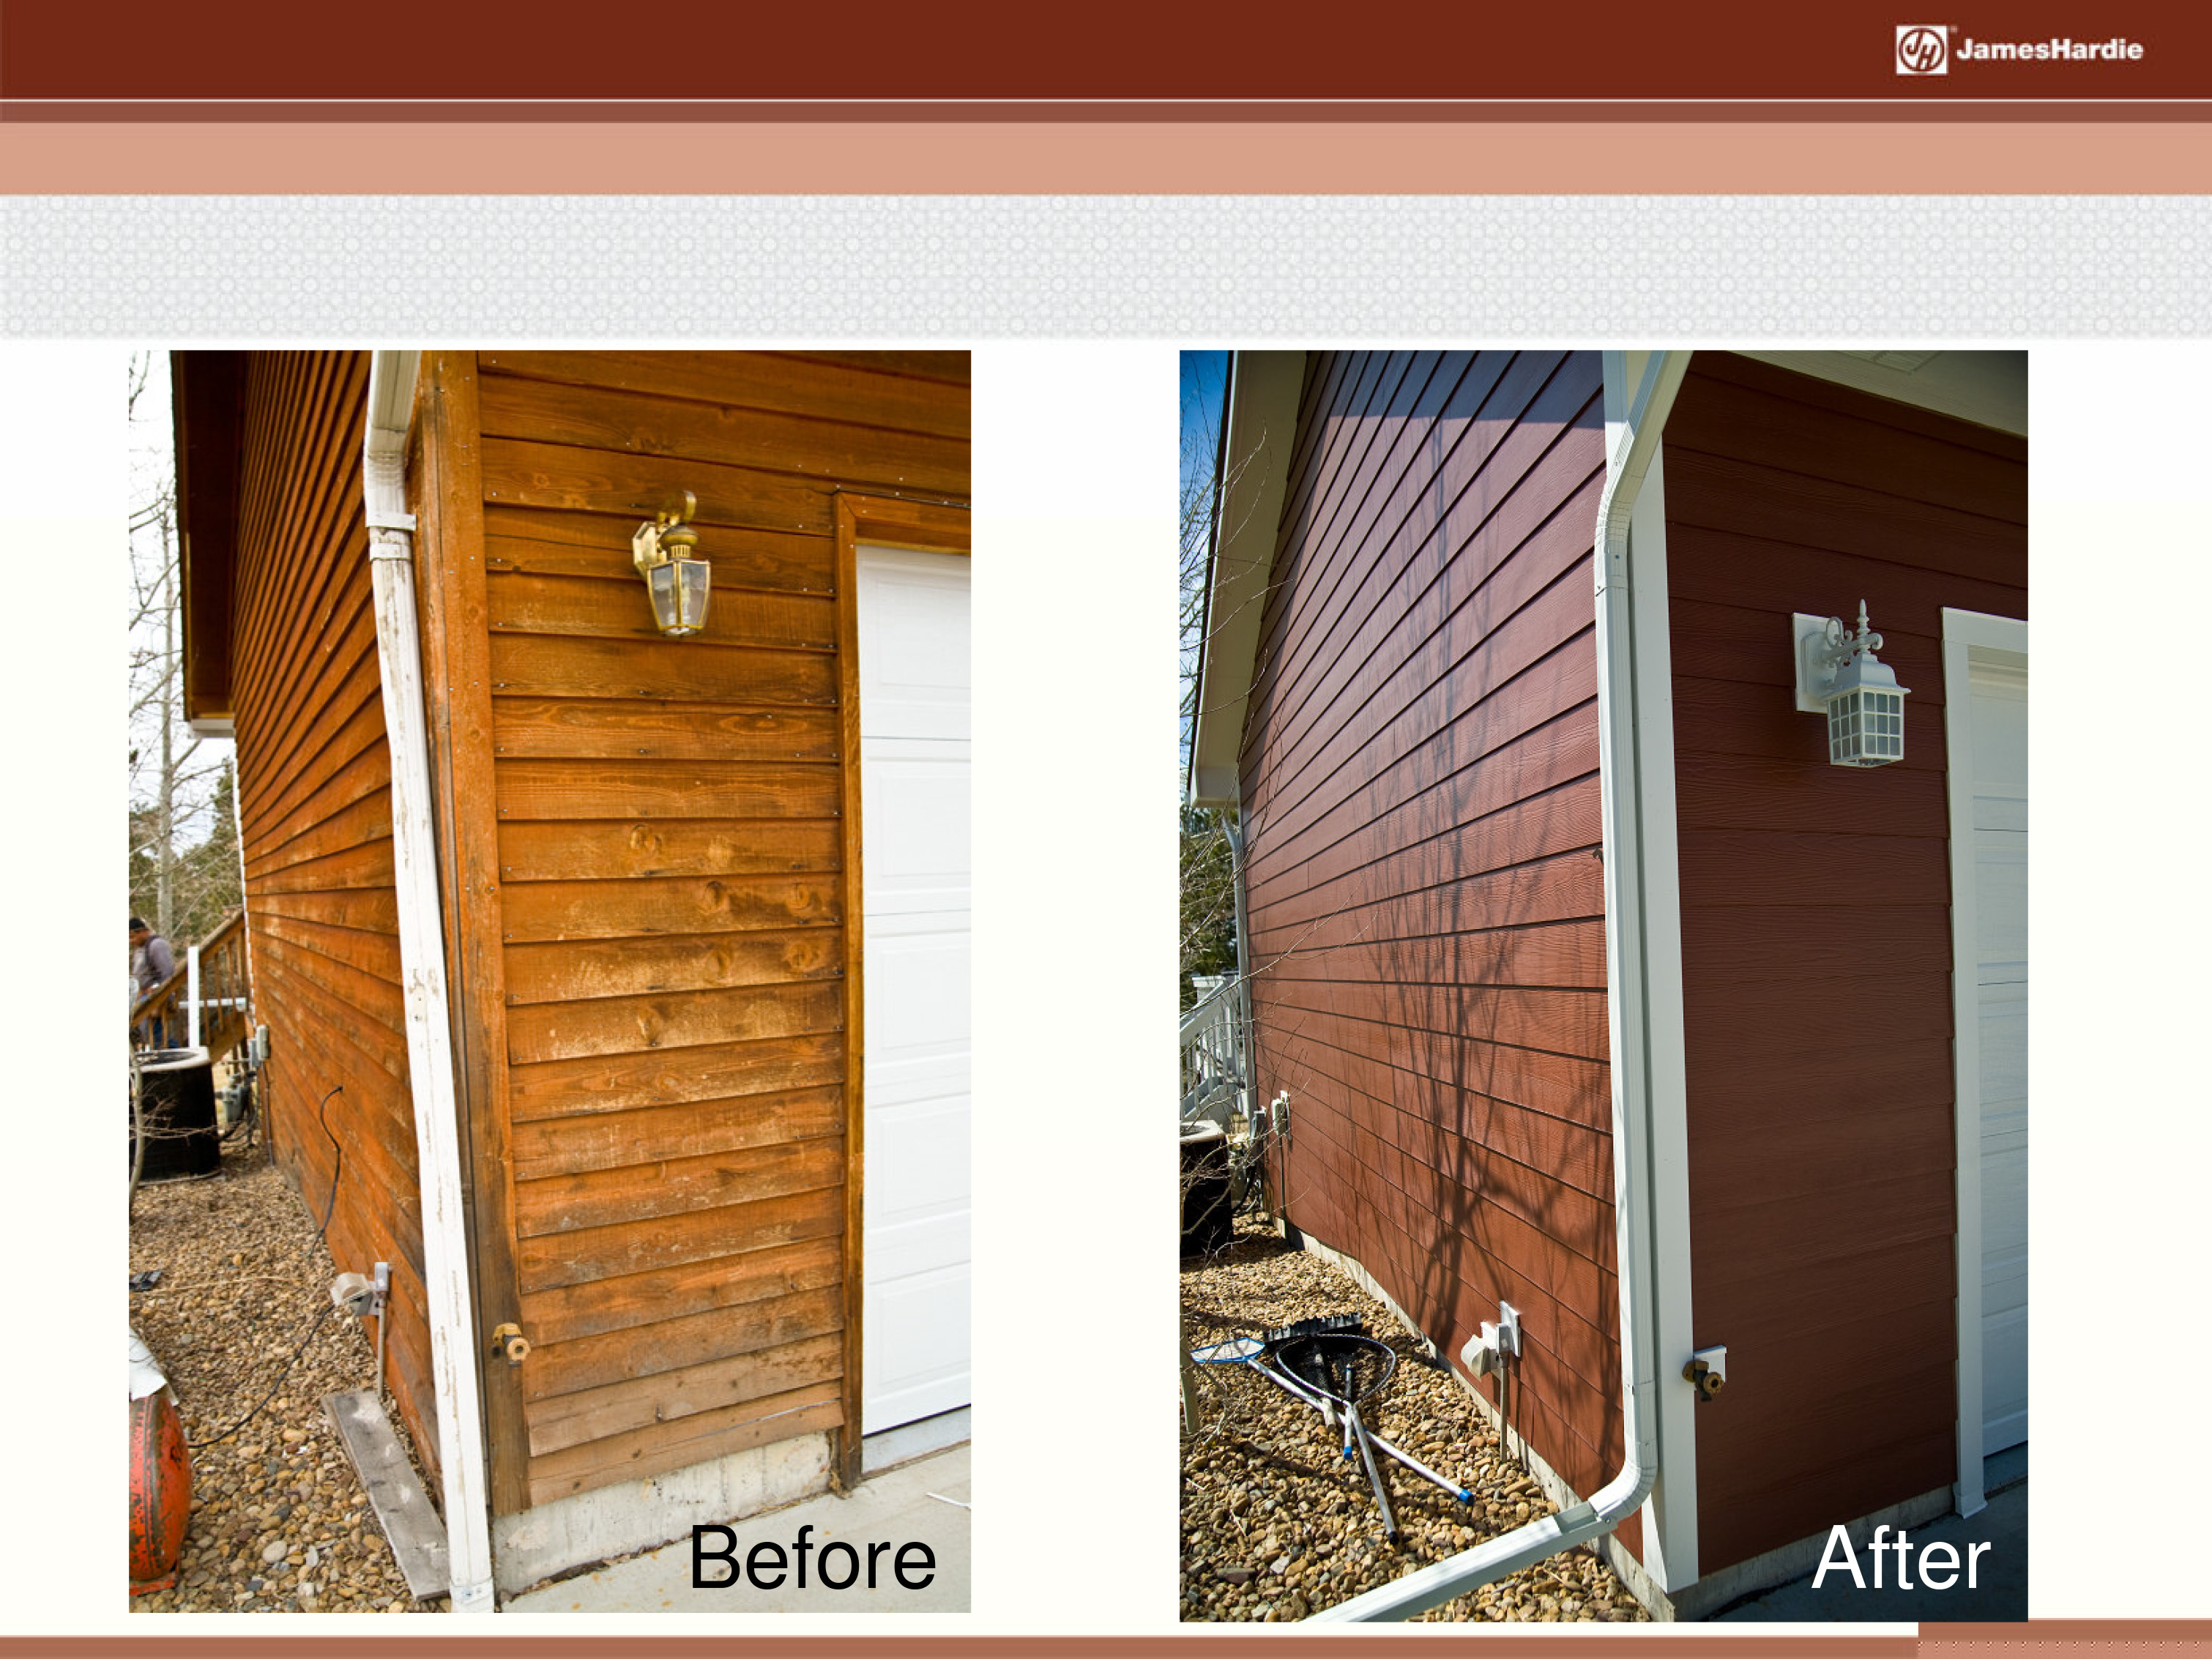 Before and After James Hardie Siding 7